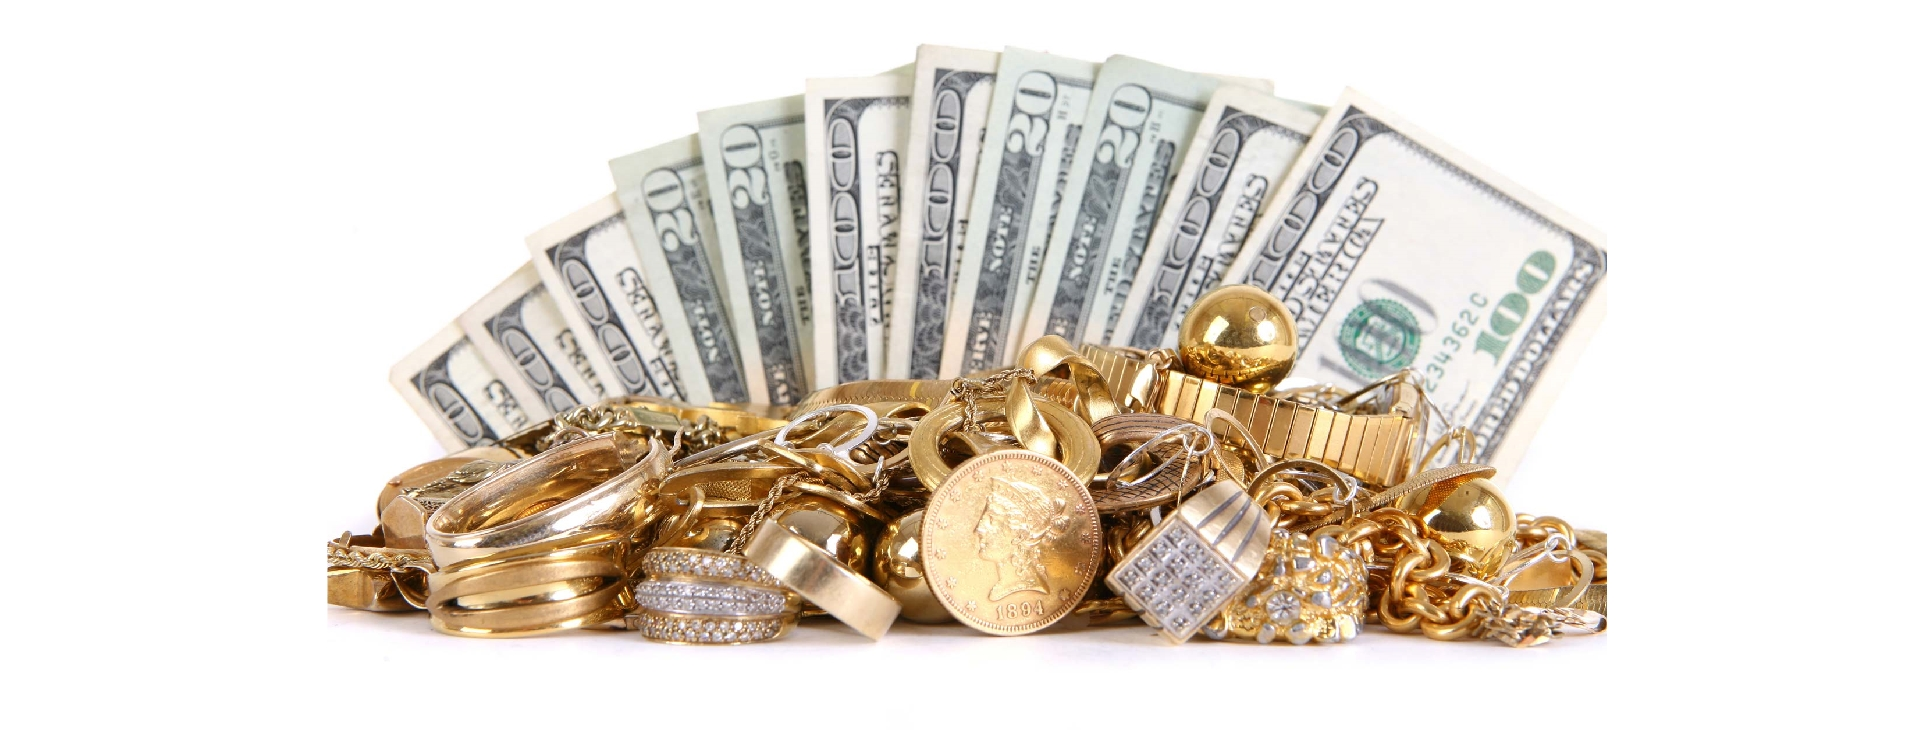 jewelry-gold-cash-pawntracker.jpg